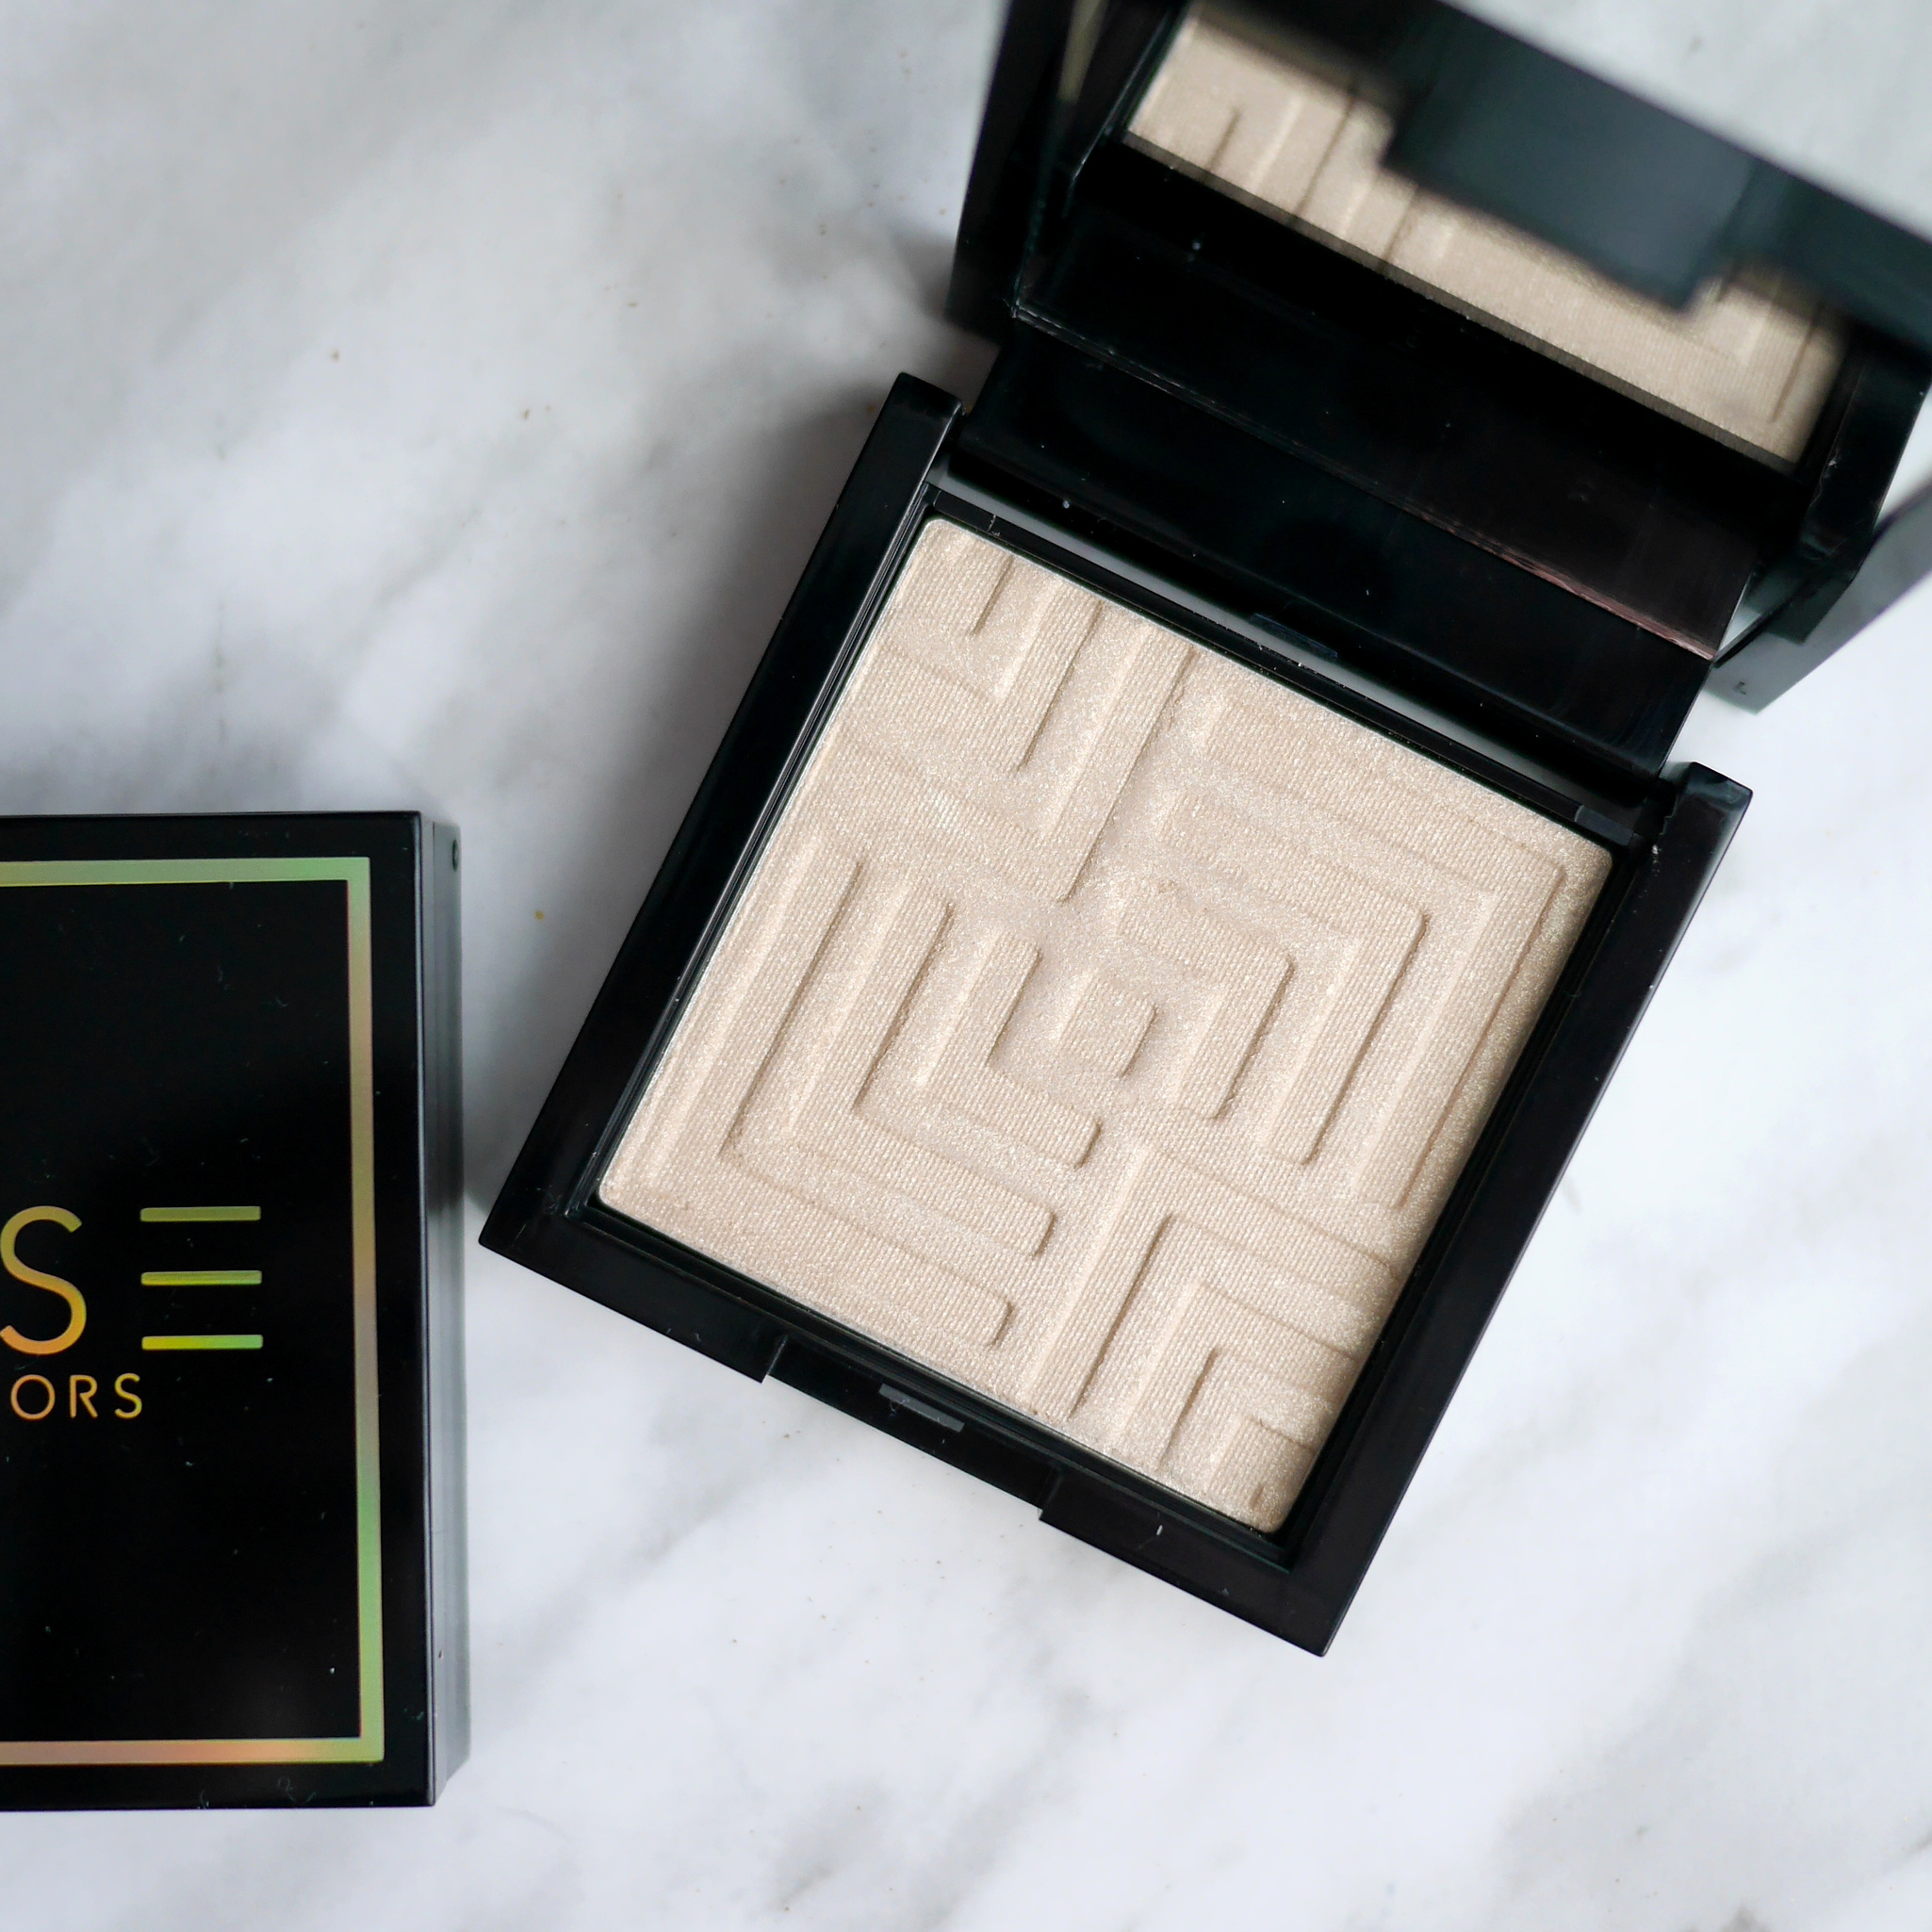 Dose of Colors Supreme Glow highlighter